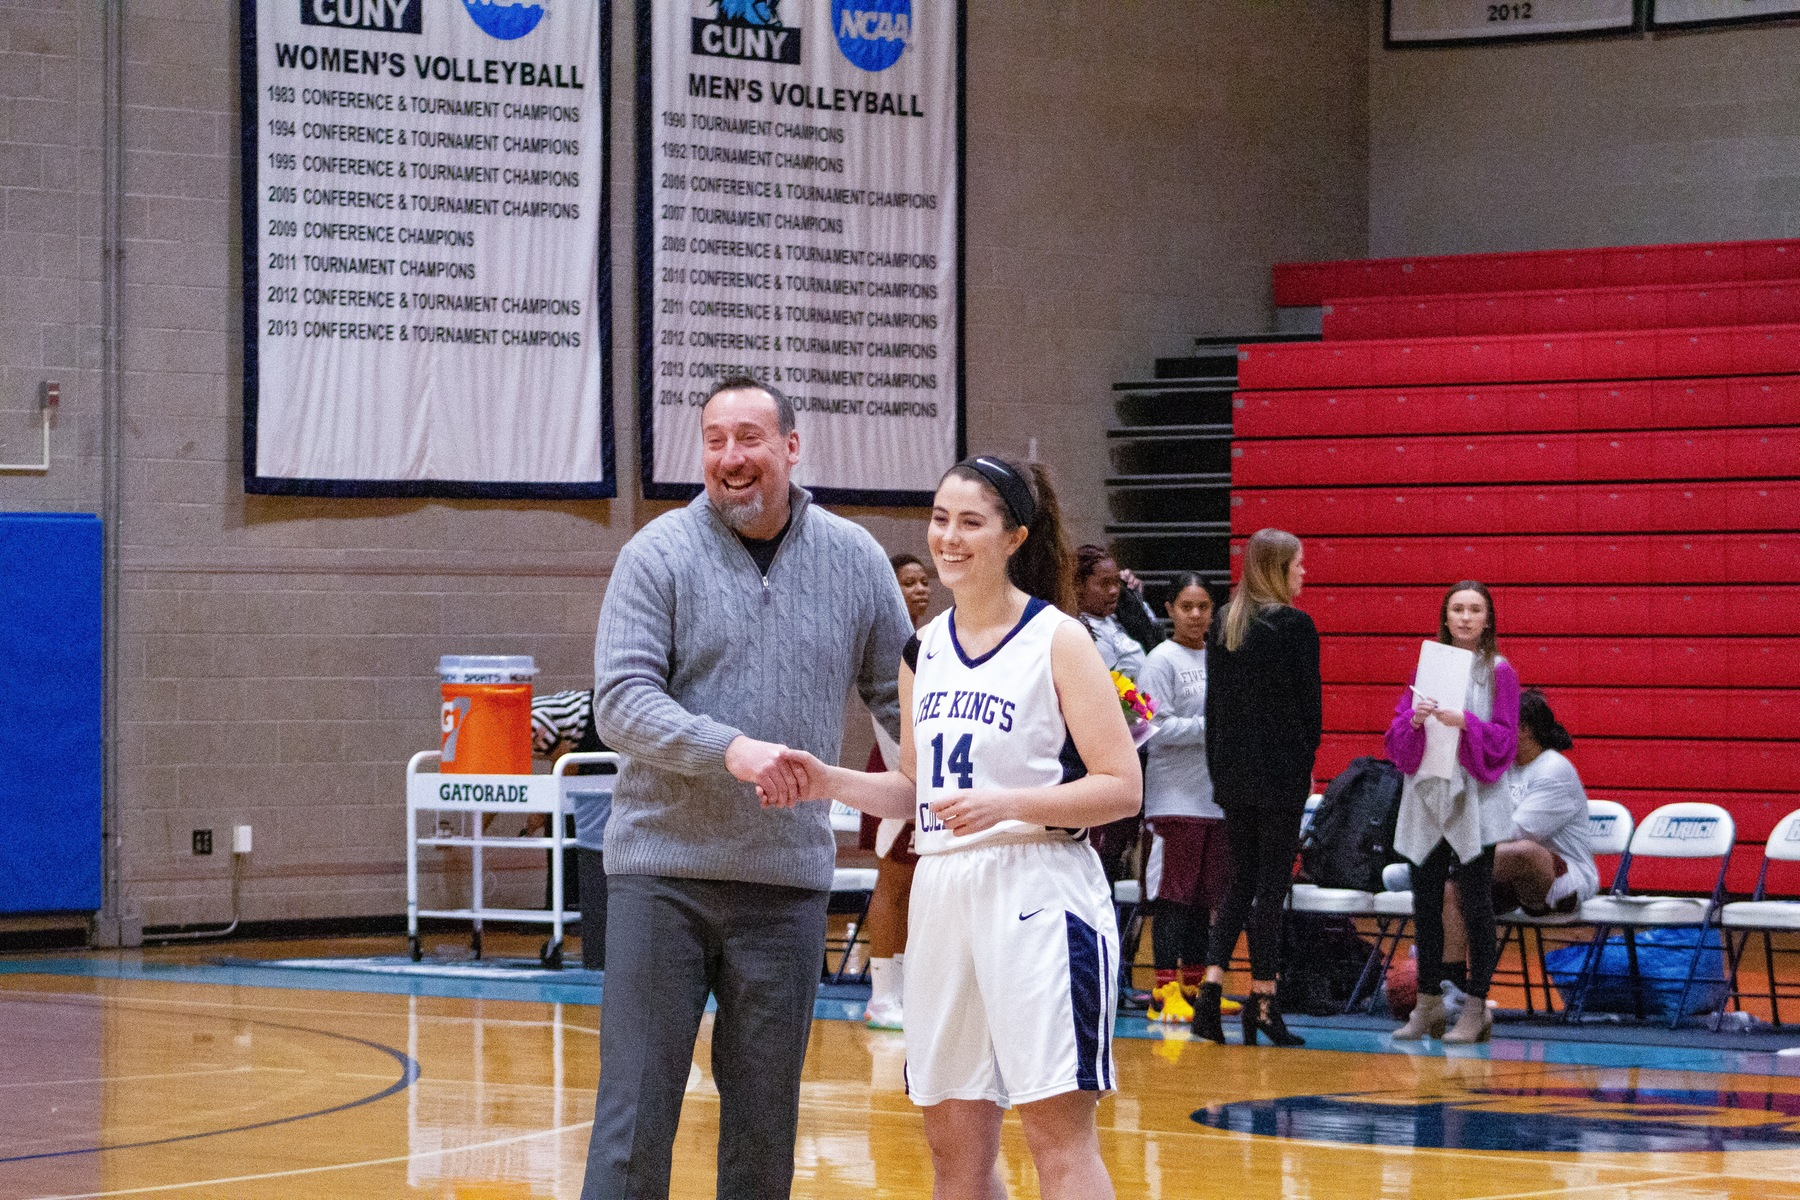 Senior Megan LeBlanc with Coach Mangarelli.